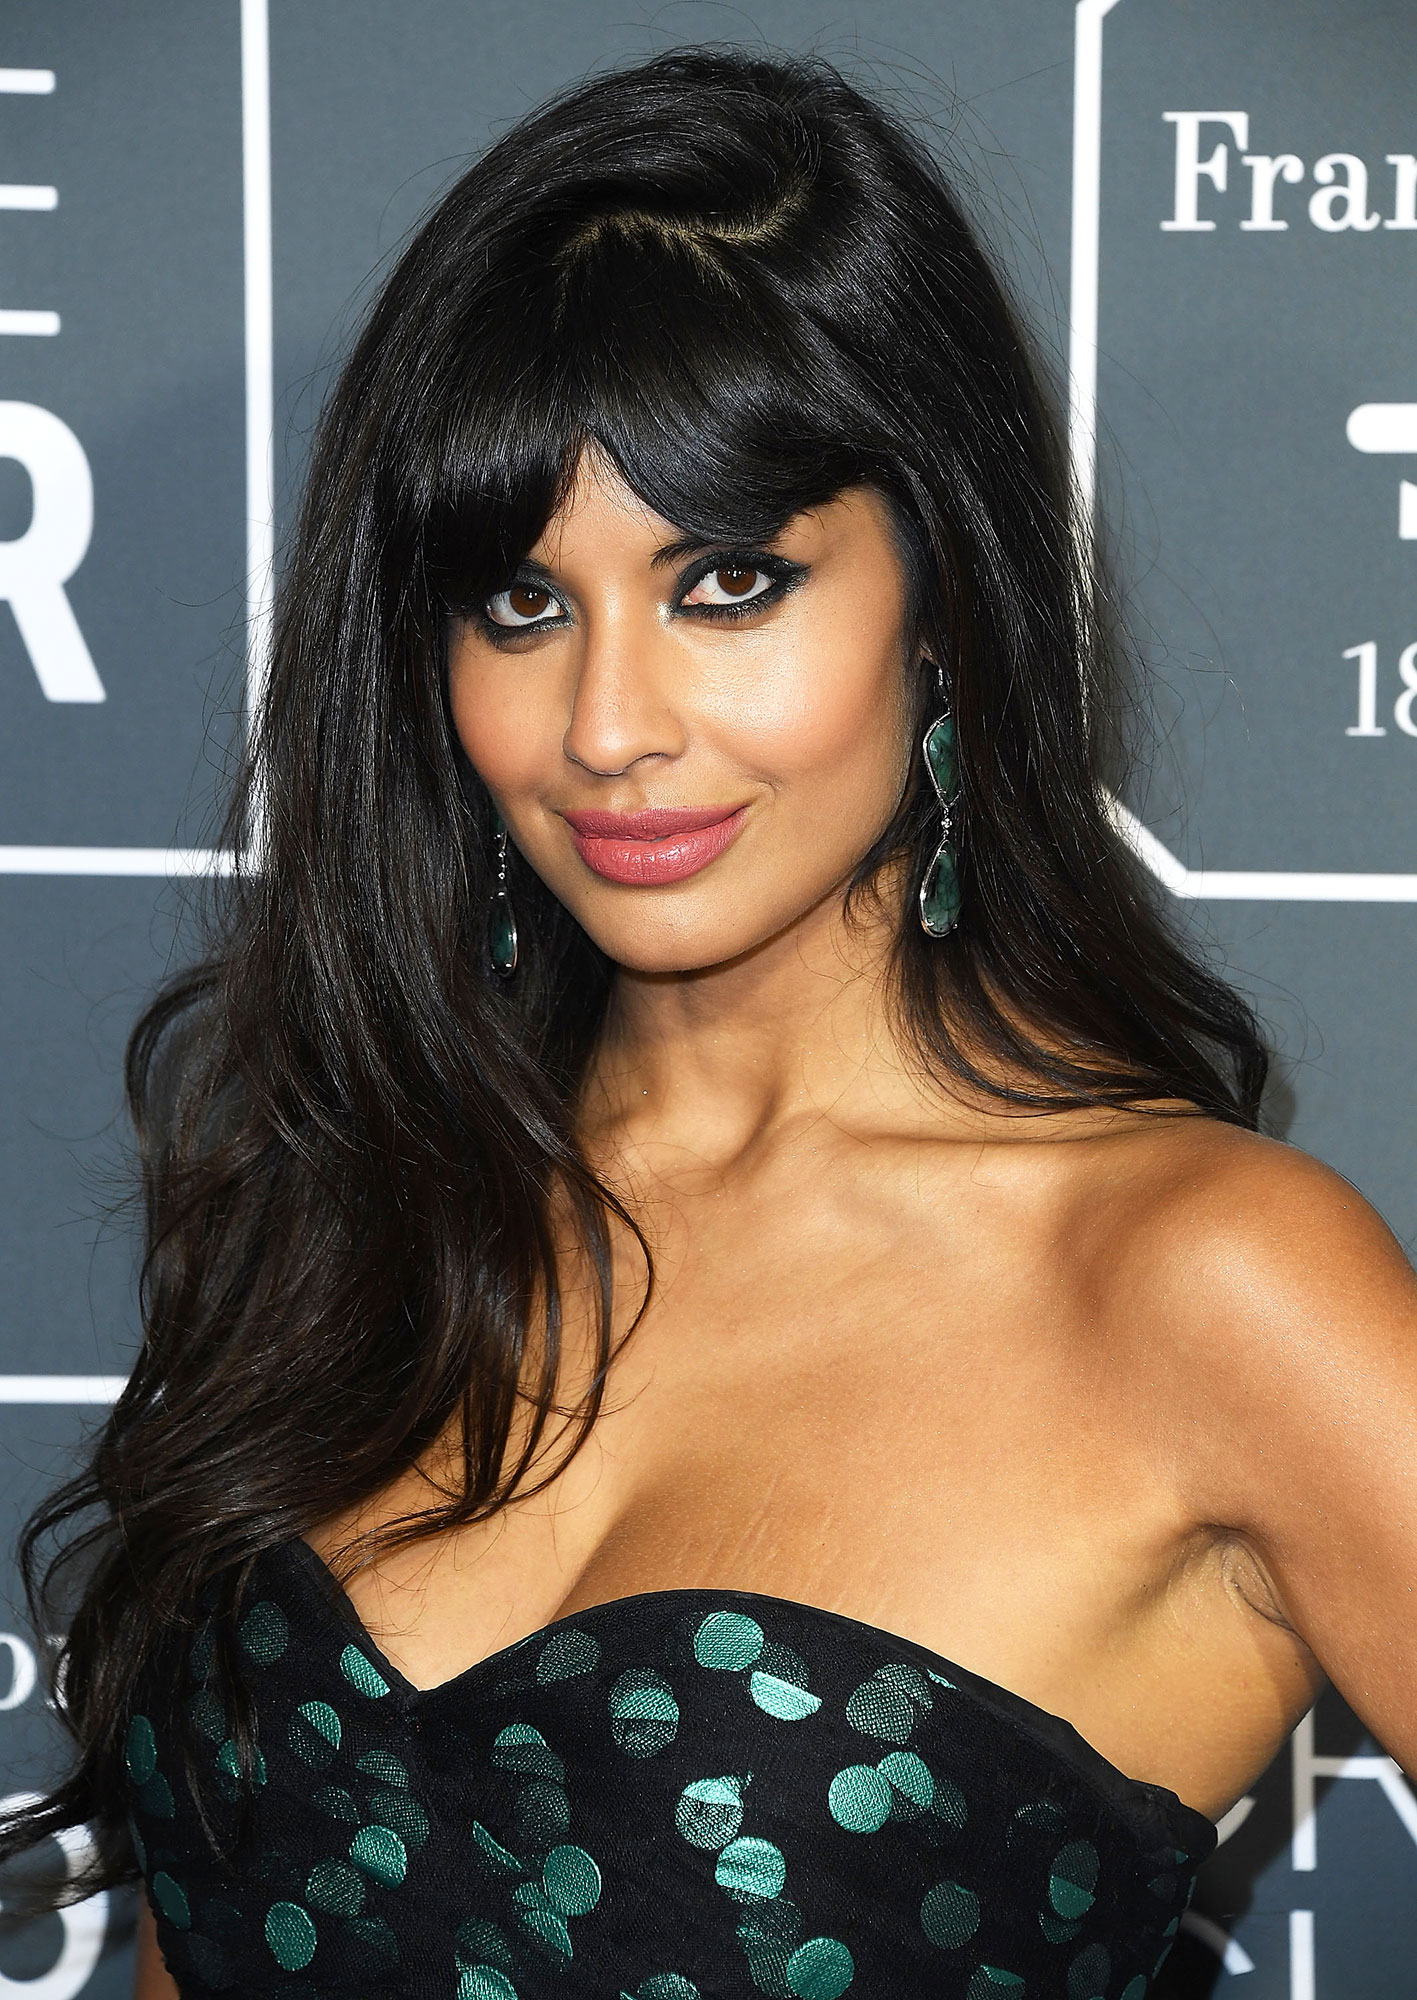 Jameela Jamil Critics' Choice Awards 2019 - With a voluminous blowout with thick fringe and lined rims by makeup artist Simone Siegl.